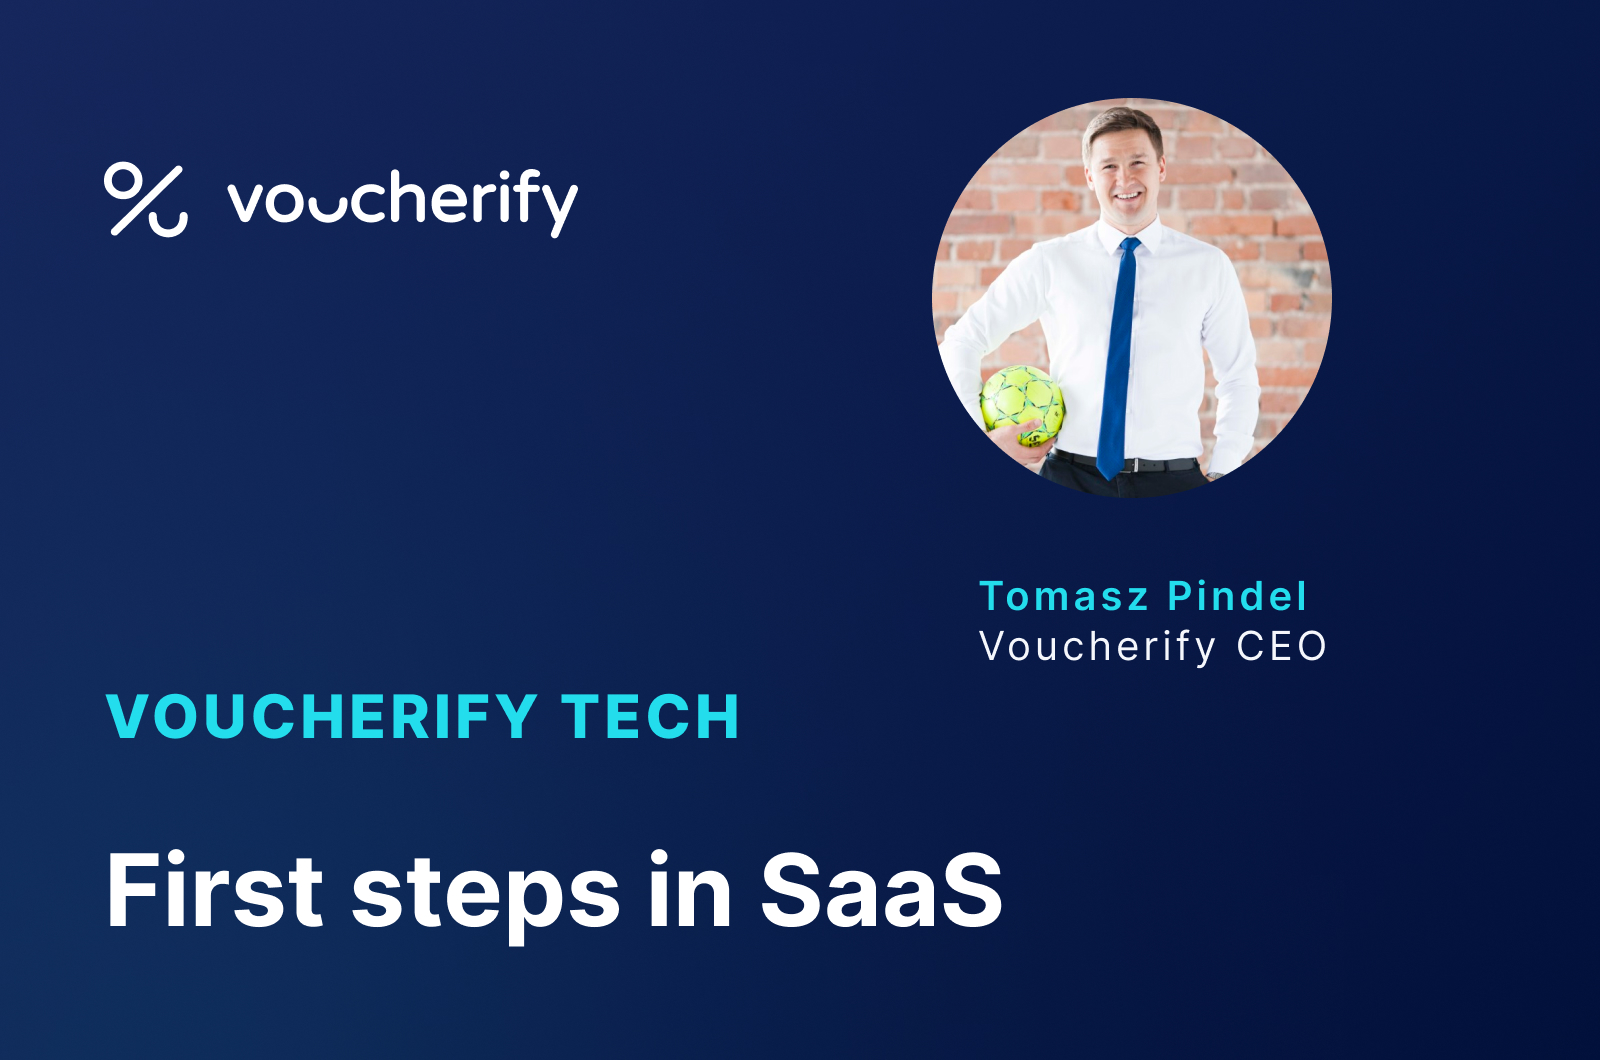 Voucherify Tech Podcast – First steps in SaaS